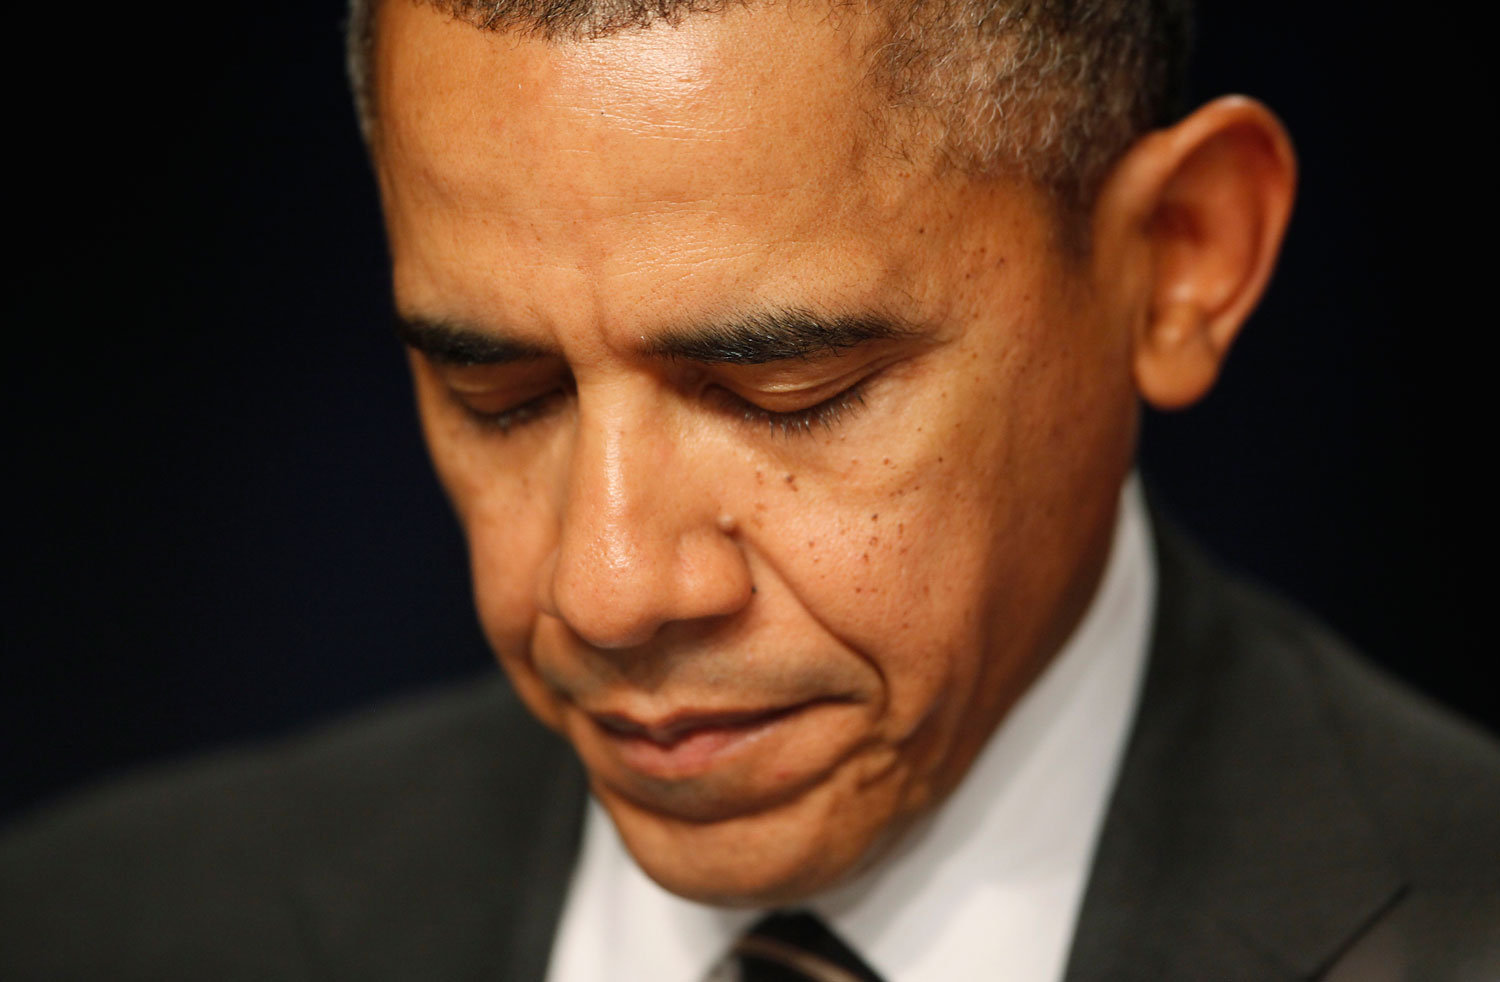 President Barack Obama closes his eyes as a prayer is offered at the National Prayer Breakfast in Washington, Feb. 6, 2014.